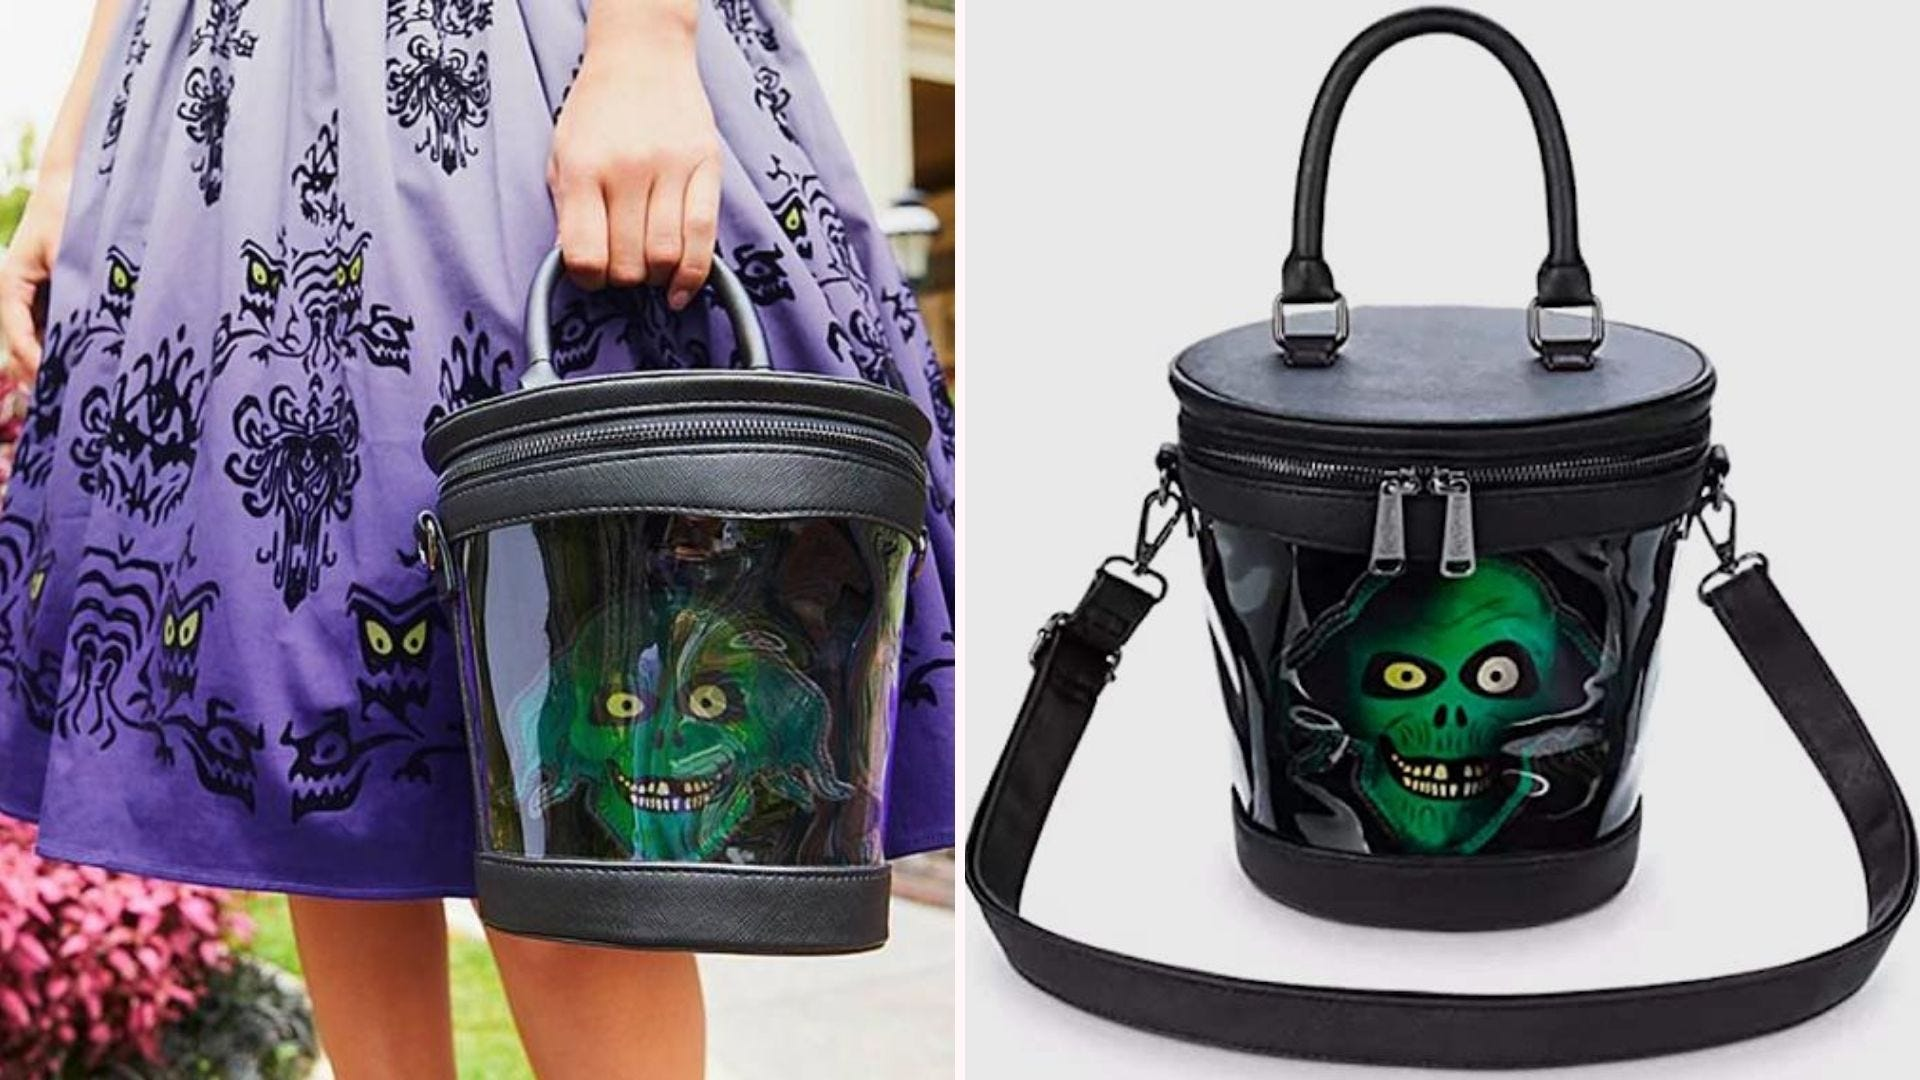 A woman in a purple skirt holding a black bucket purse with the green Hatbox Ghost; close up of the same purse